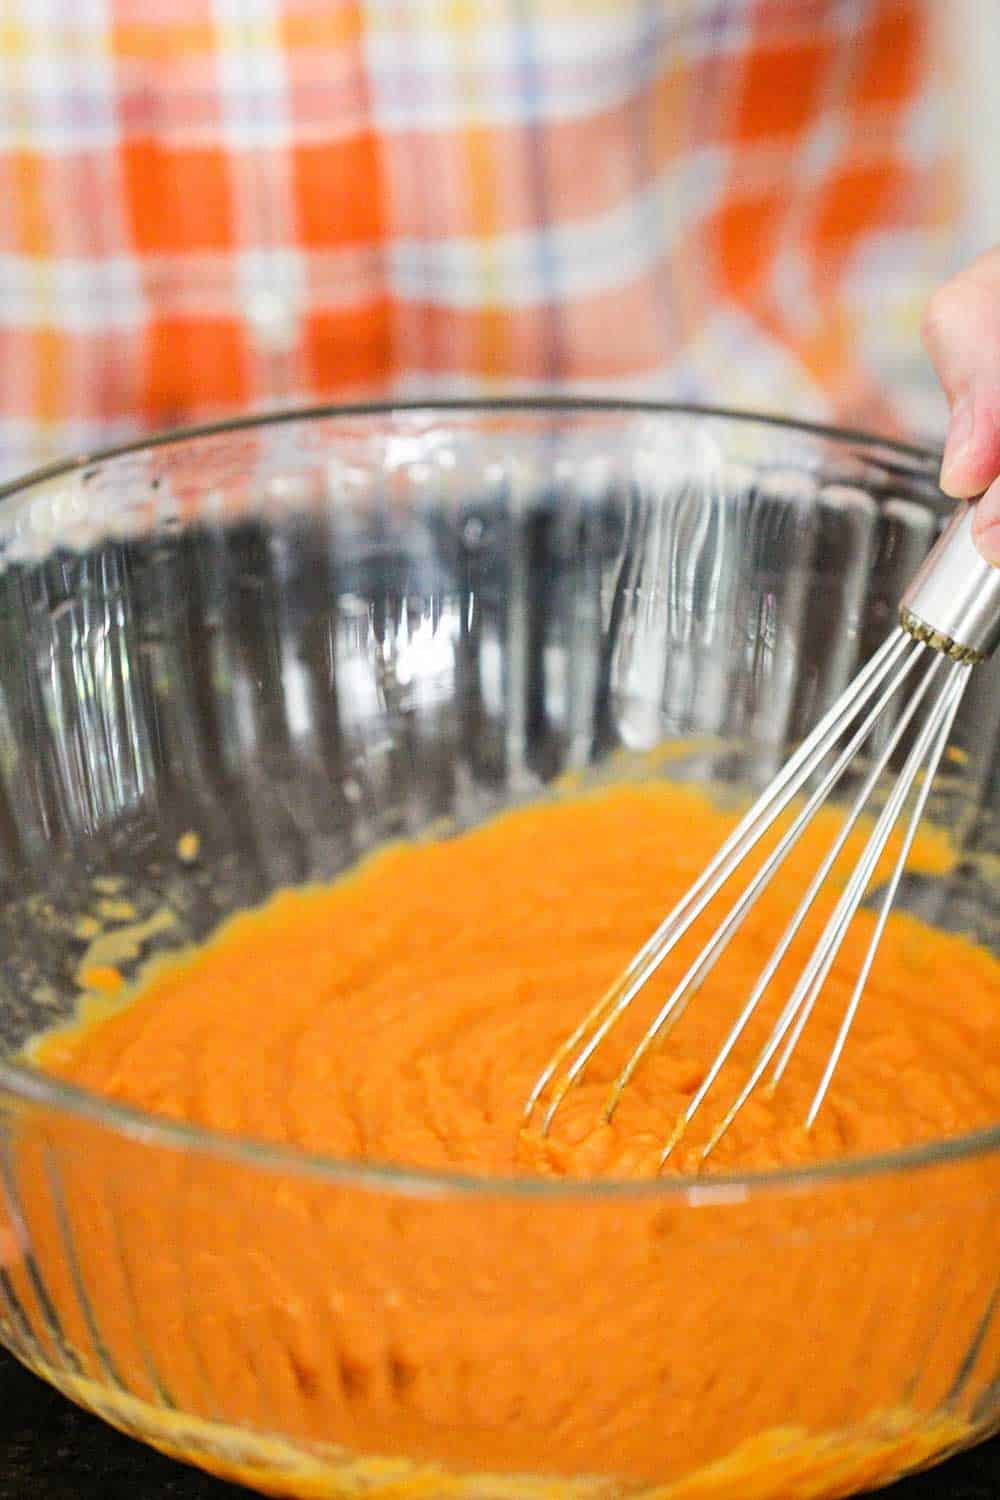 A large bowl filled with pumpkin puree, with a hand holding a whisk in the bowl.